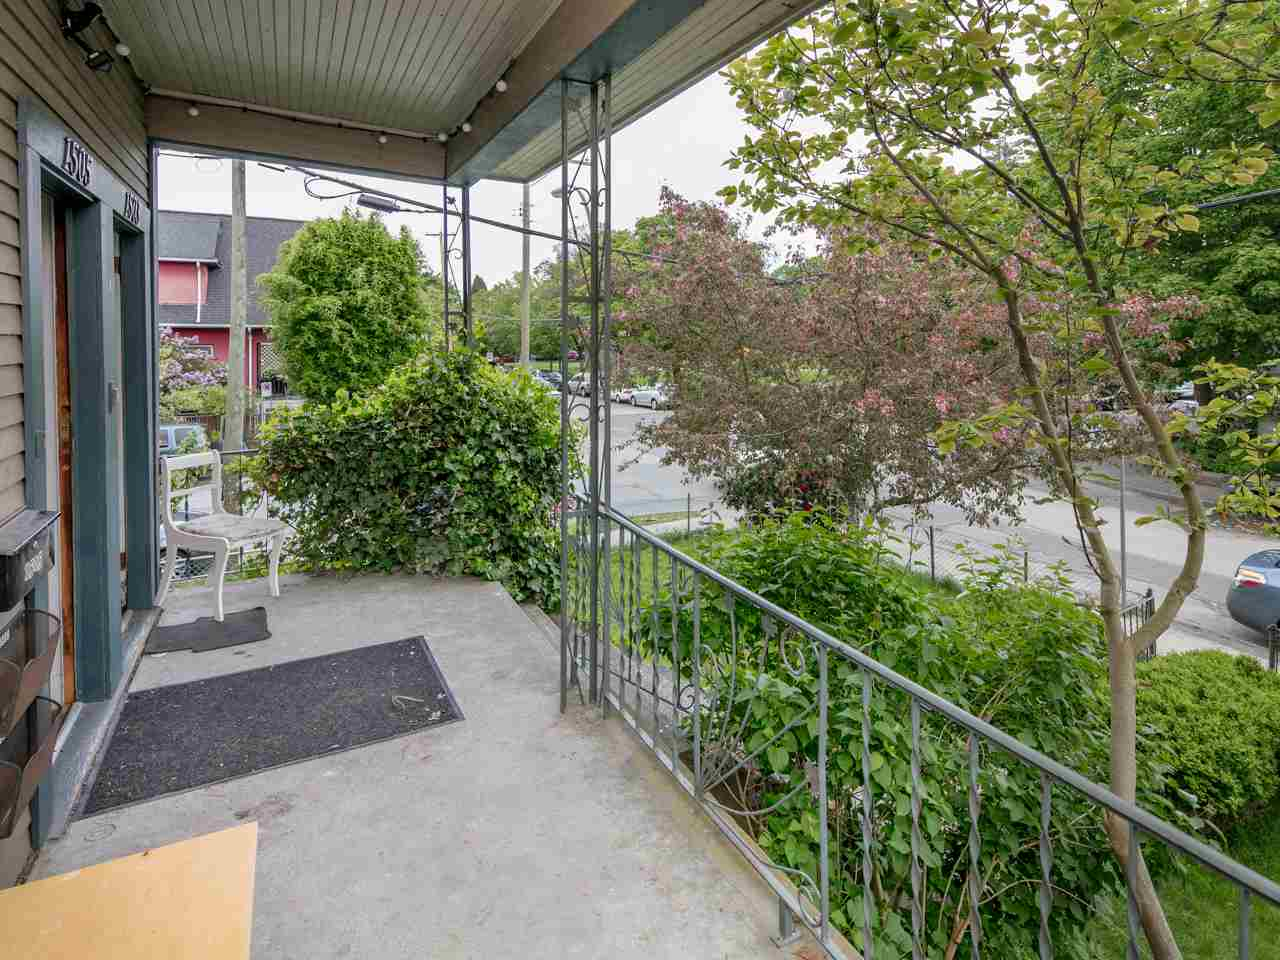 Photo 12: 1505 SALSBURY Drive in Vancouver: Grandview VE House for sale (Vancouver East)  : MLS(r) # R2179781